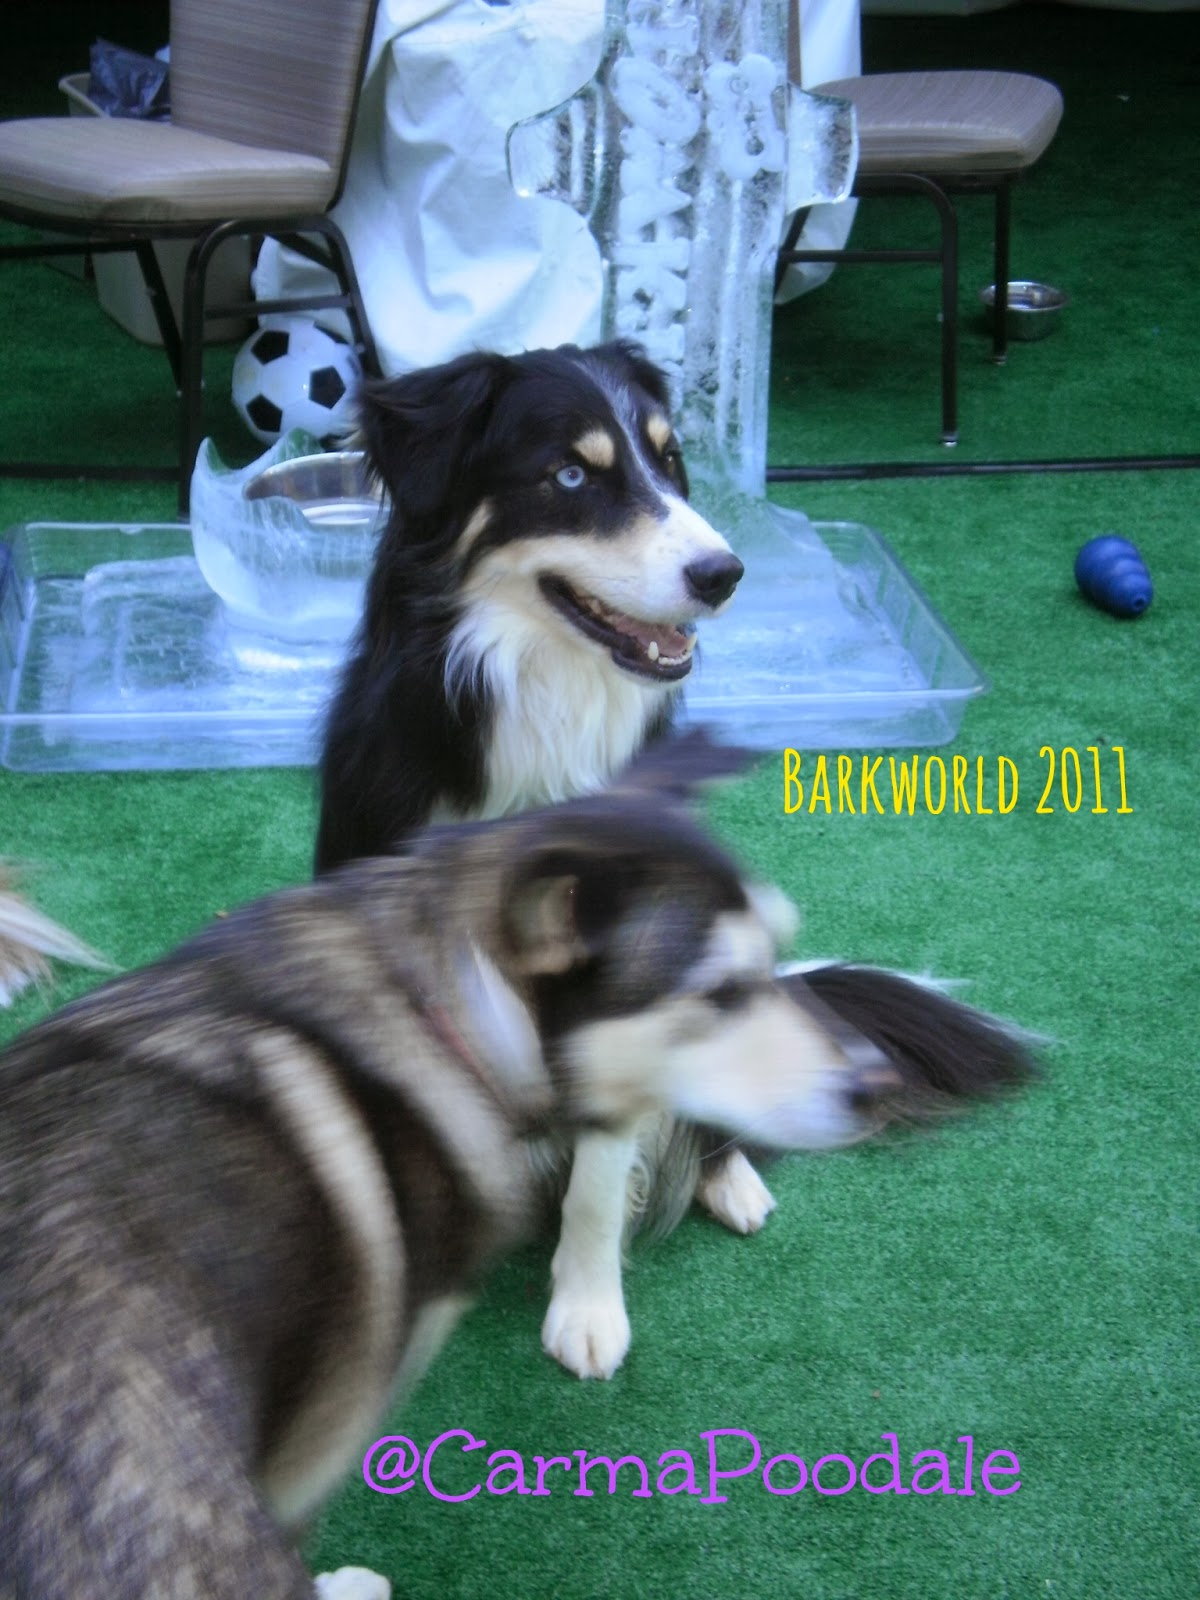 McGrady at Barkworld 2011